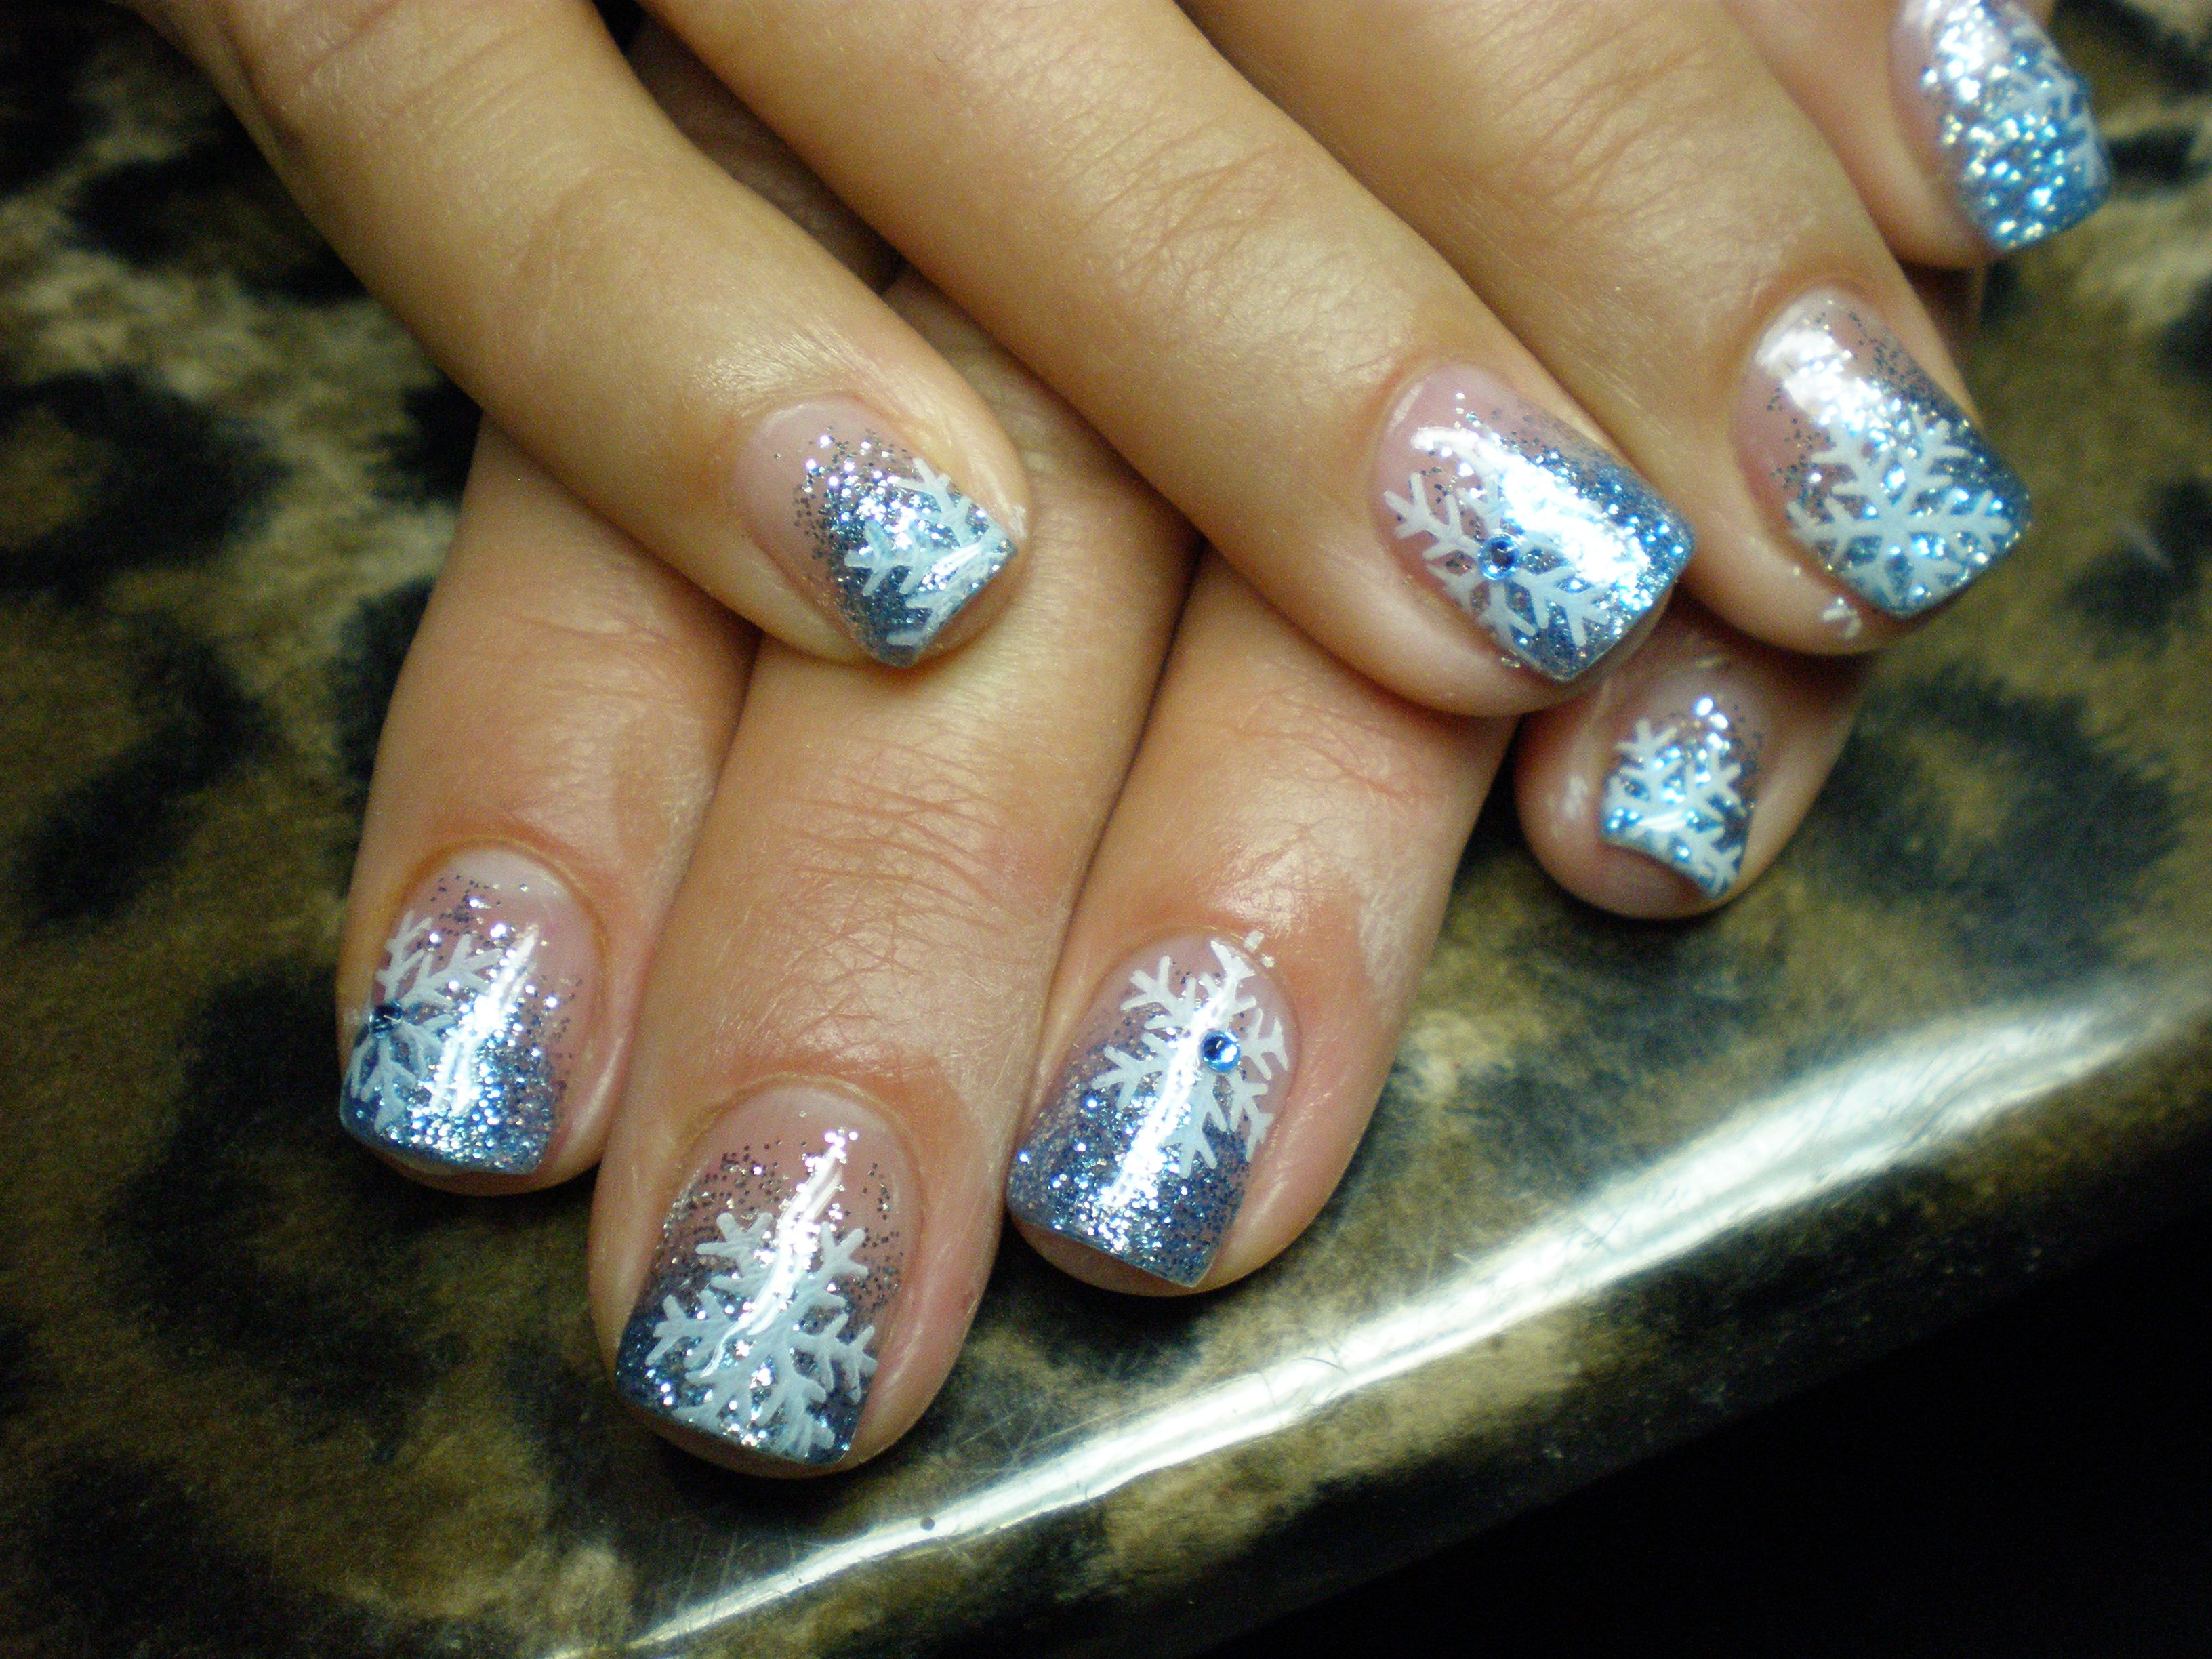 Nageldesign weihnachten | nail designs . | Pinterest | Beauty care ...